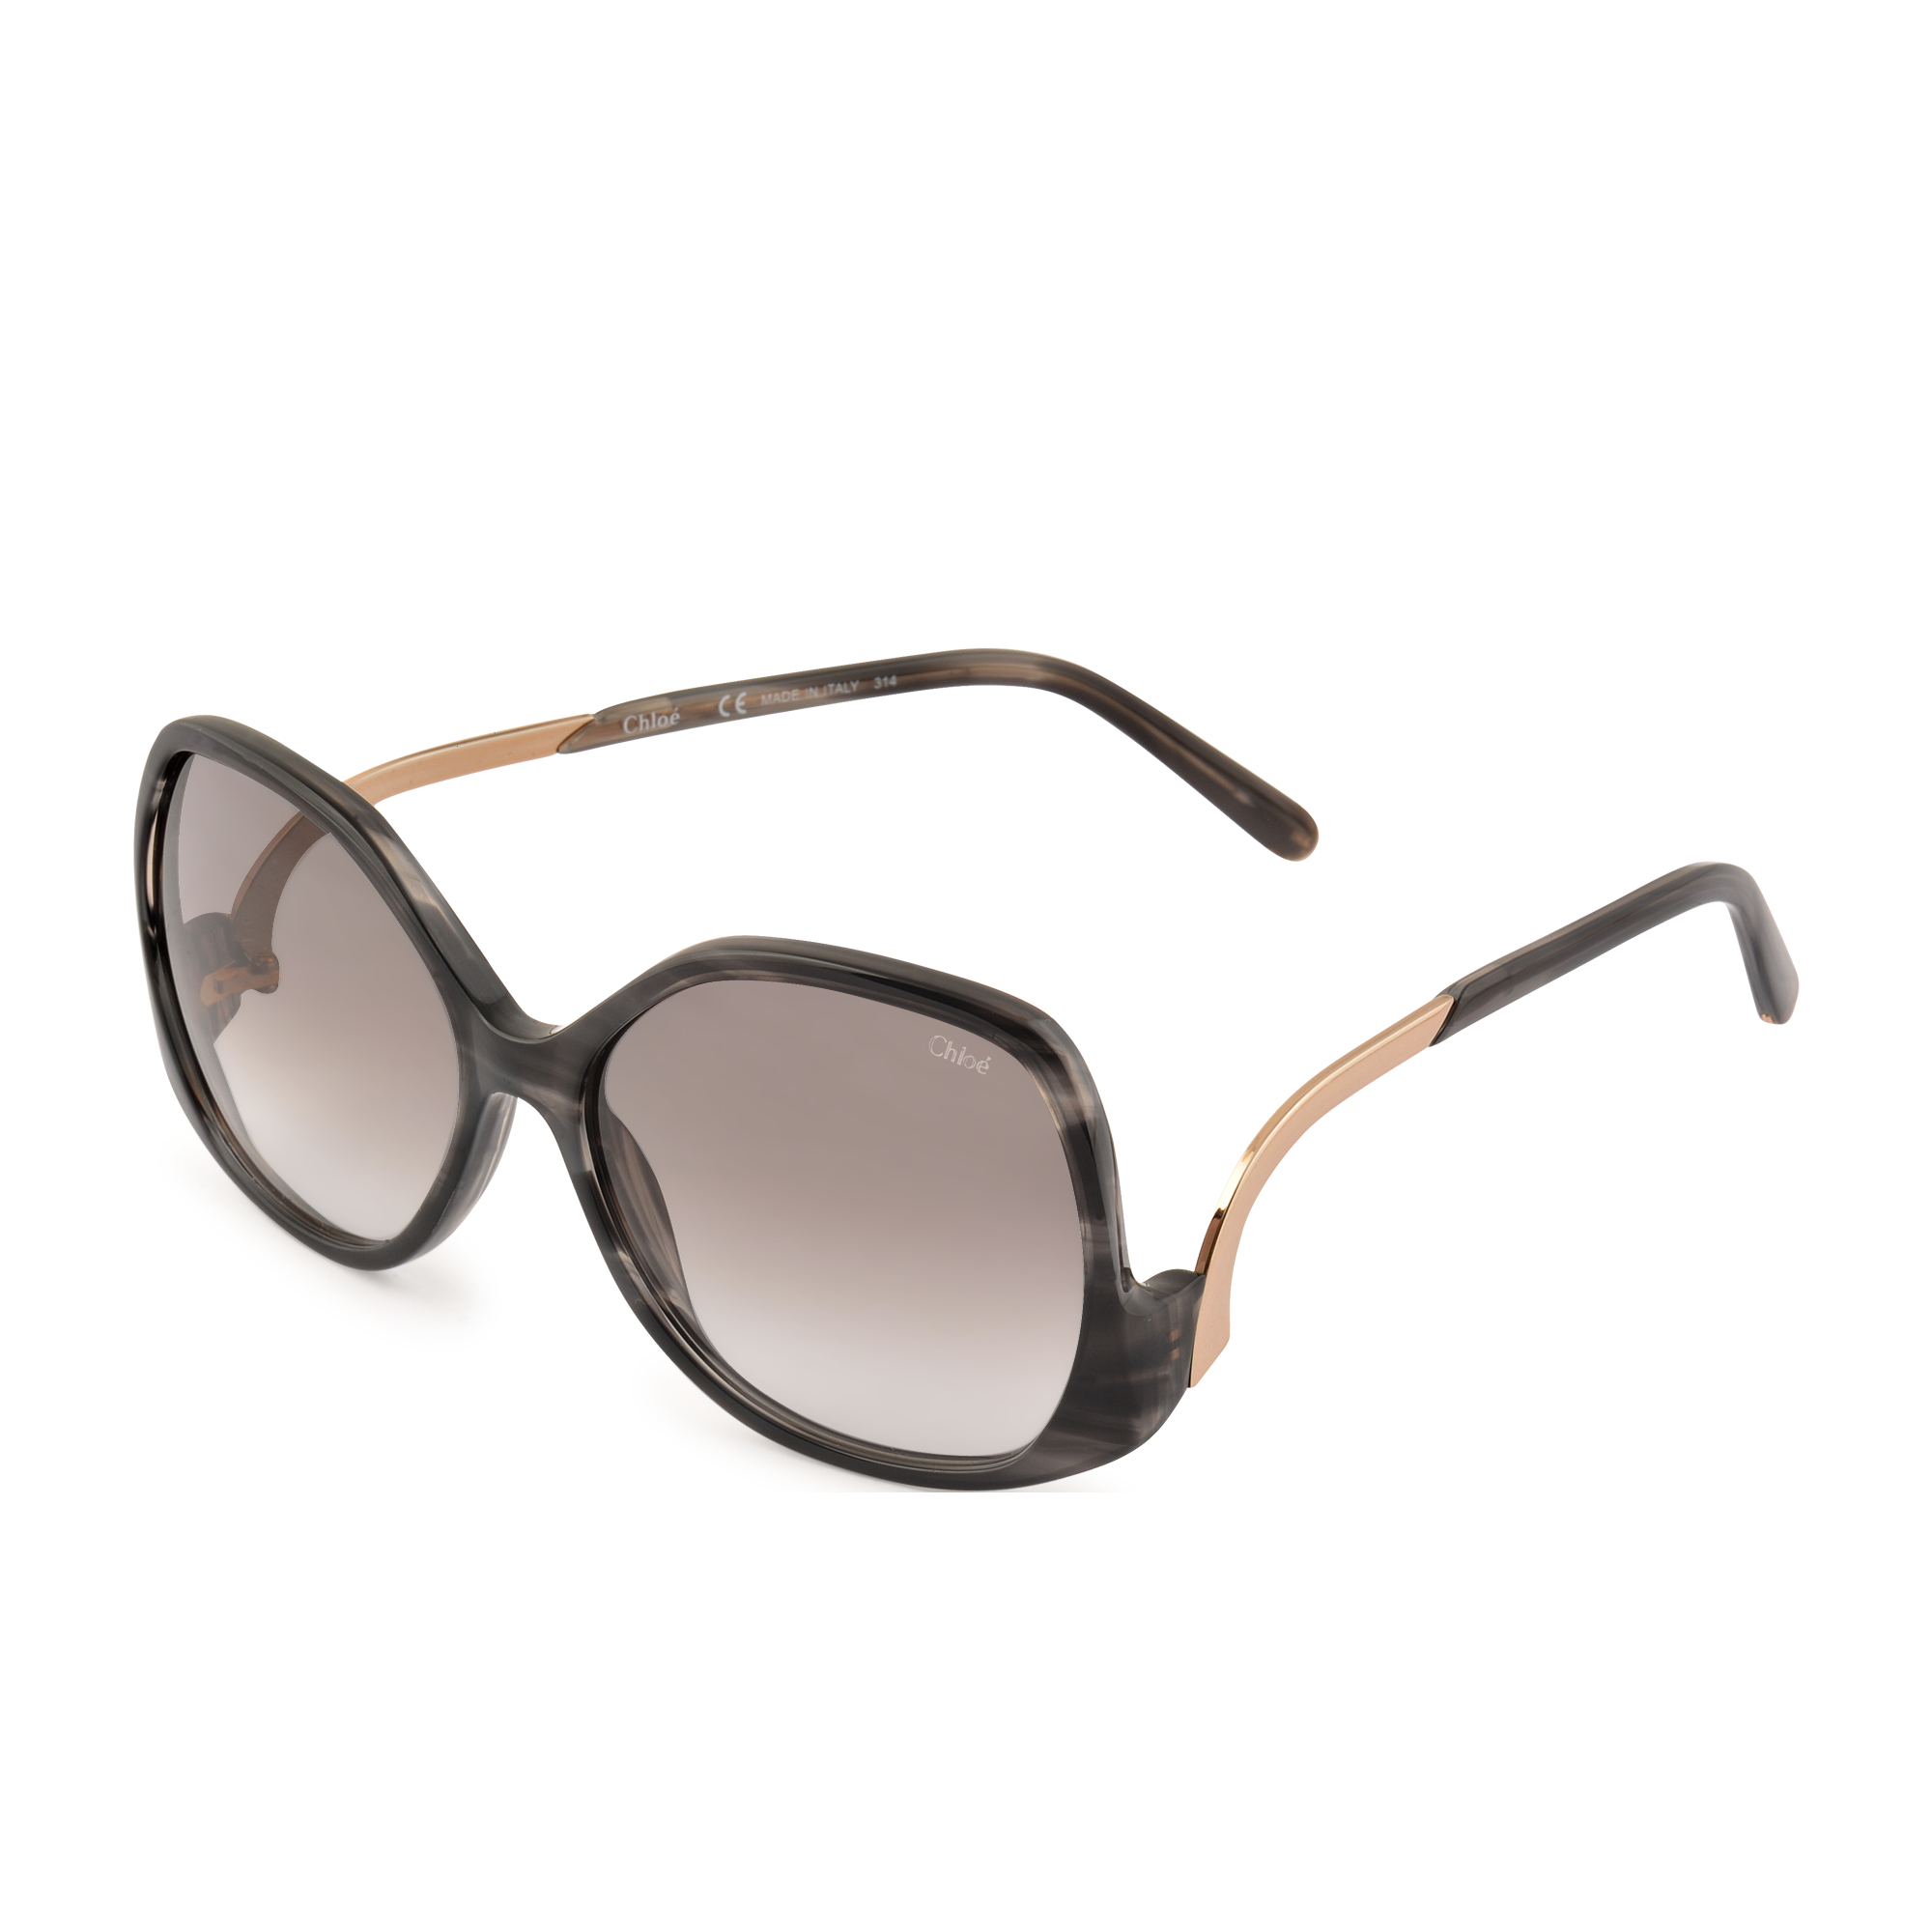 af9b9384922 Chloé Ce675s Sunglasses in Gray